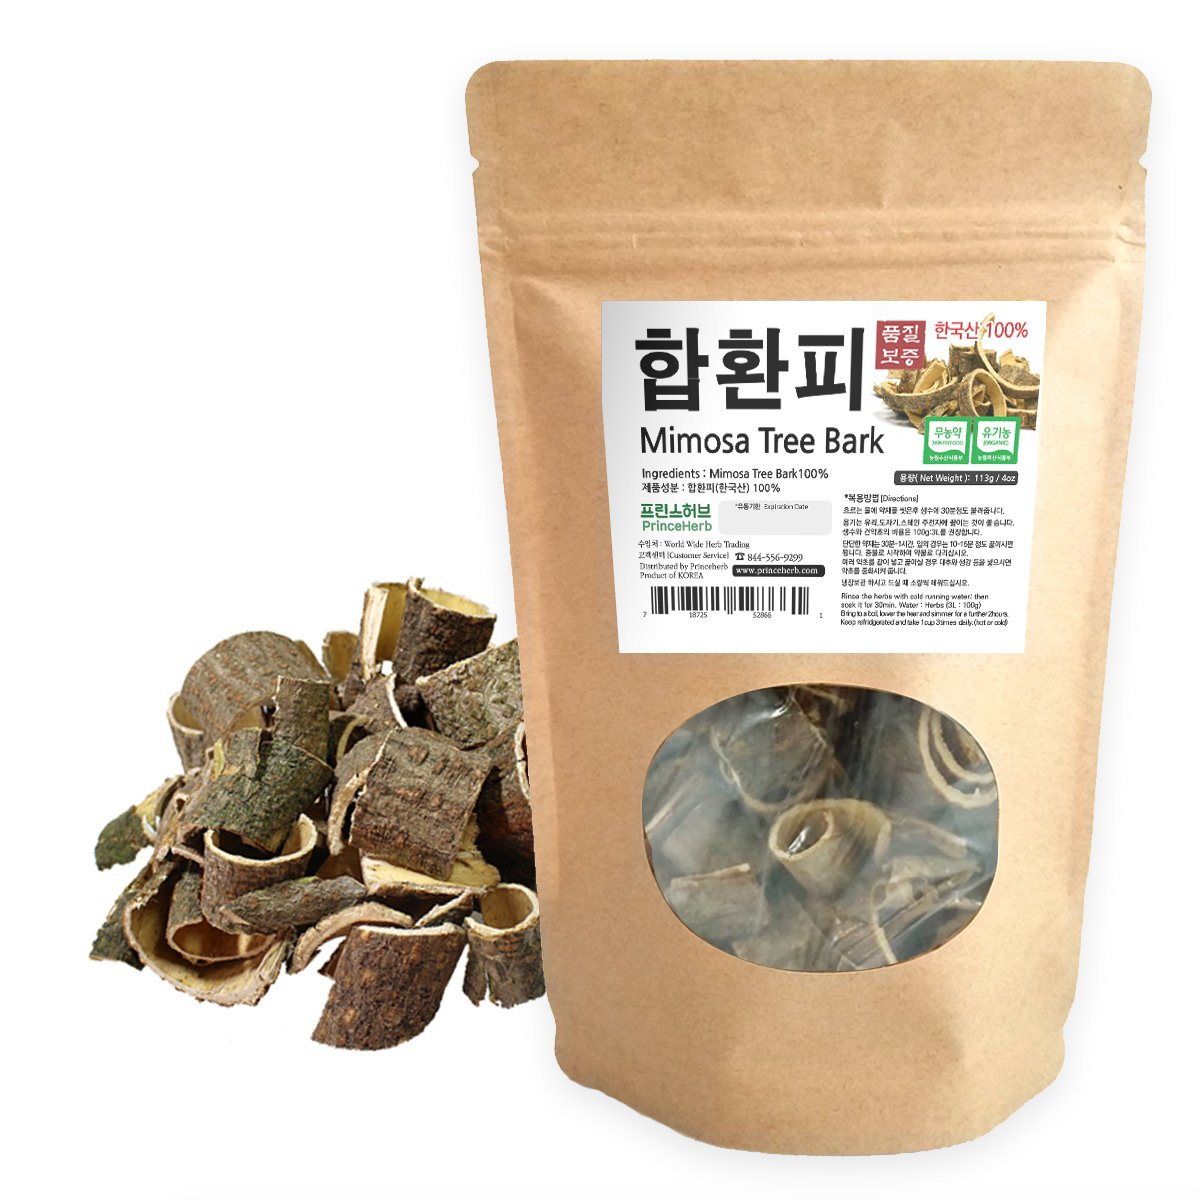 [Medicinal Korean Herb] Albizziae Cortex (Mimosa Tree Bark/Hehuanpi / 합환피) Dried Bulk Herbs 4oz (113g) by HERBstory (Image #1)